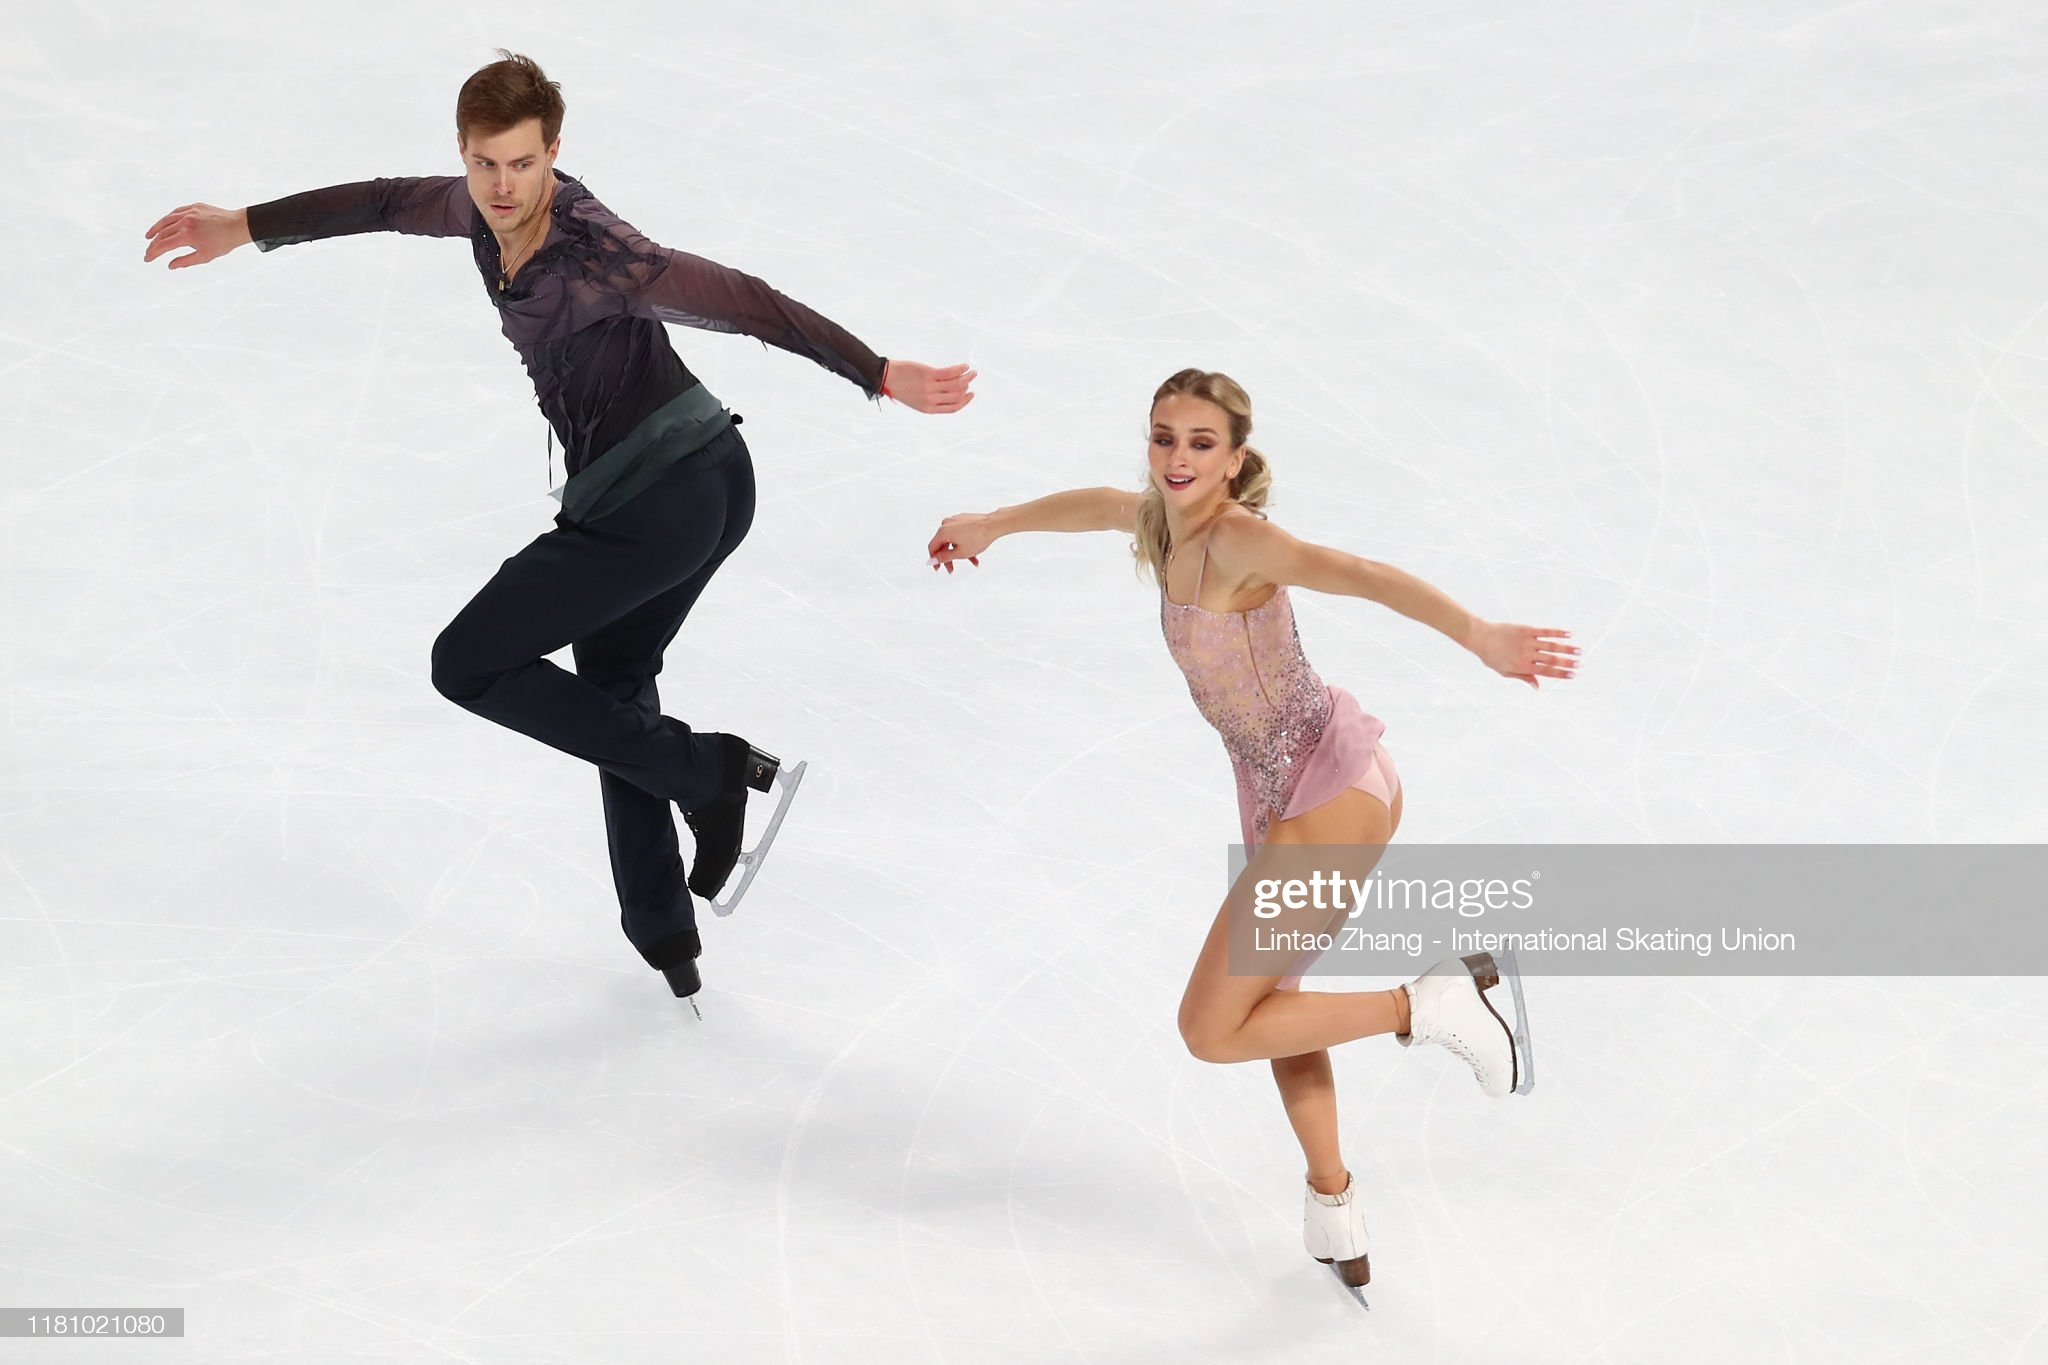 https://media.gettyimages.com/photos/victoria-sinitsina-and-nikita-katsalapov-of-russia-performs-in-the-picture-id1181021080?s=2048x2048